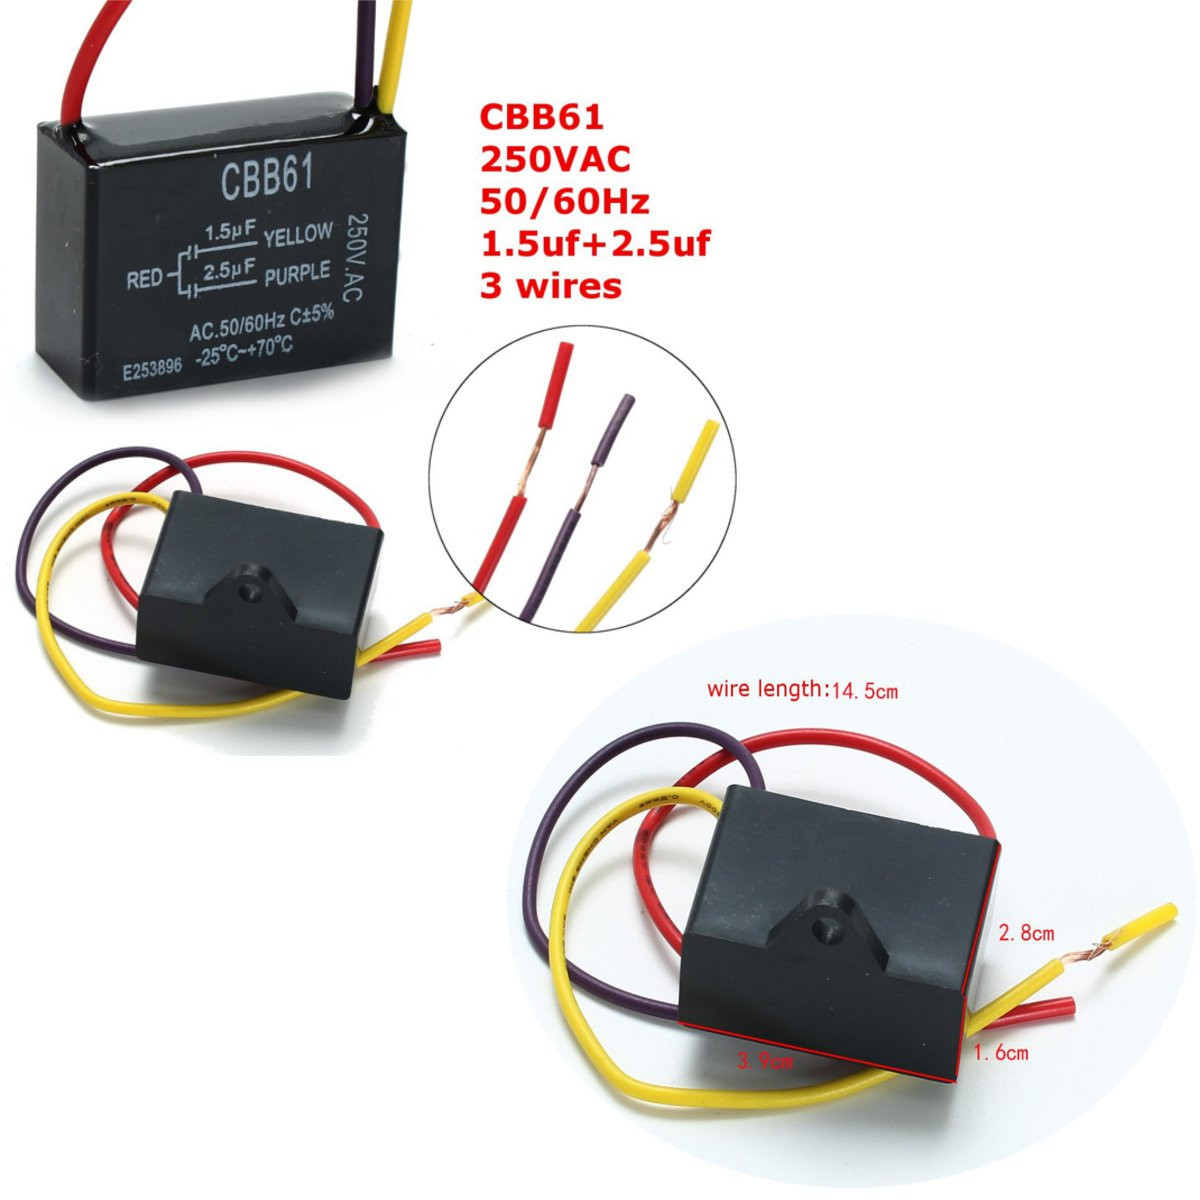 hight resolution of cbb61 1 5uf 2 5uf 3 wire 250vac ceiling fan capacitor 3 wires